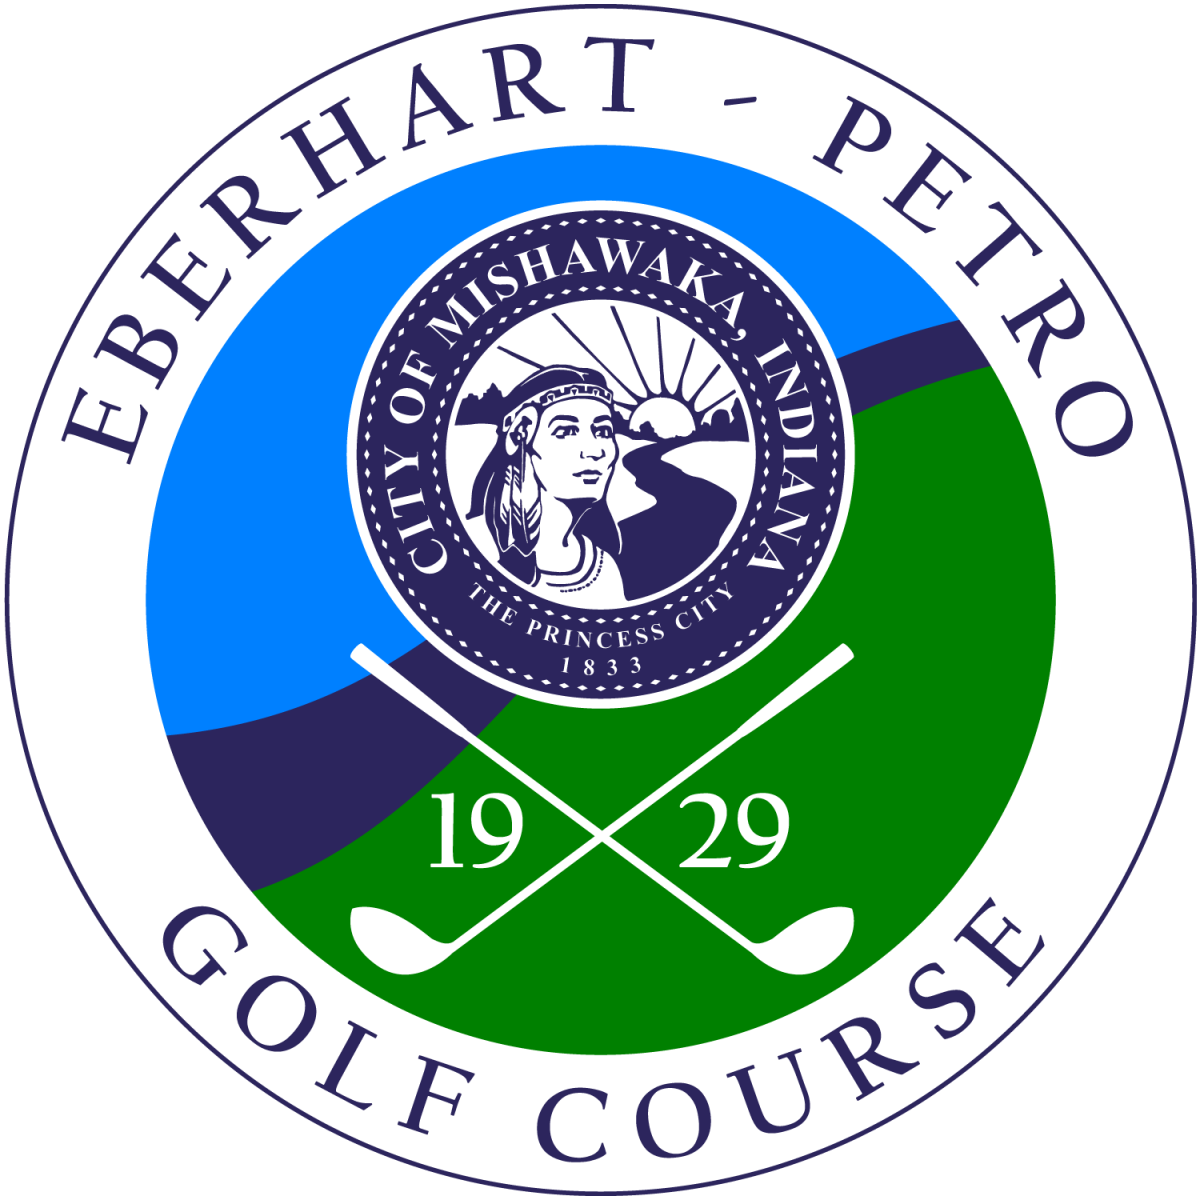 Round blue and green logo for Eberhart-Petro Golf Course with City Seal and crossed golf clubs